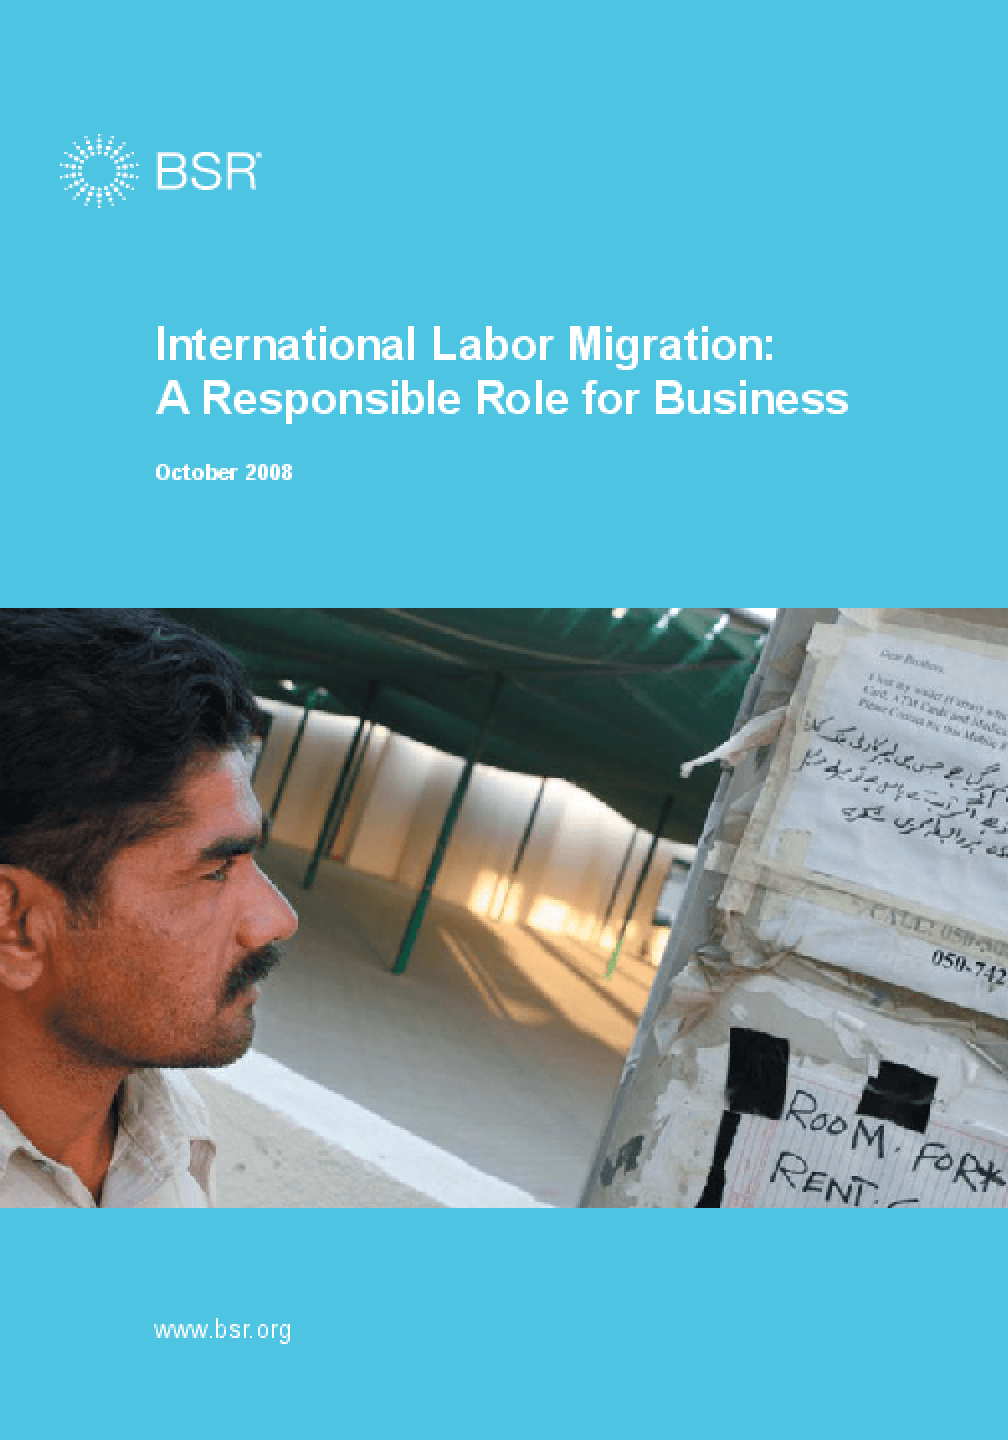 International Labor Migration: A Responsible Role for Business